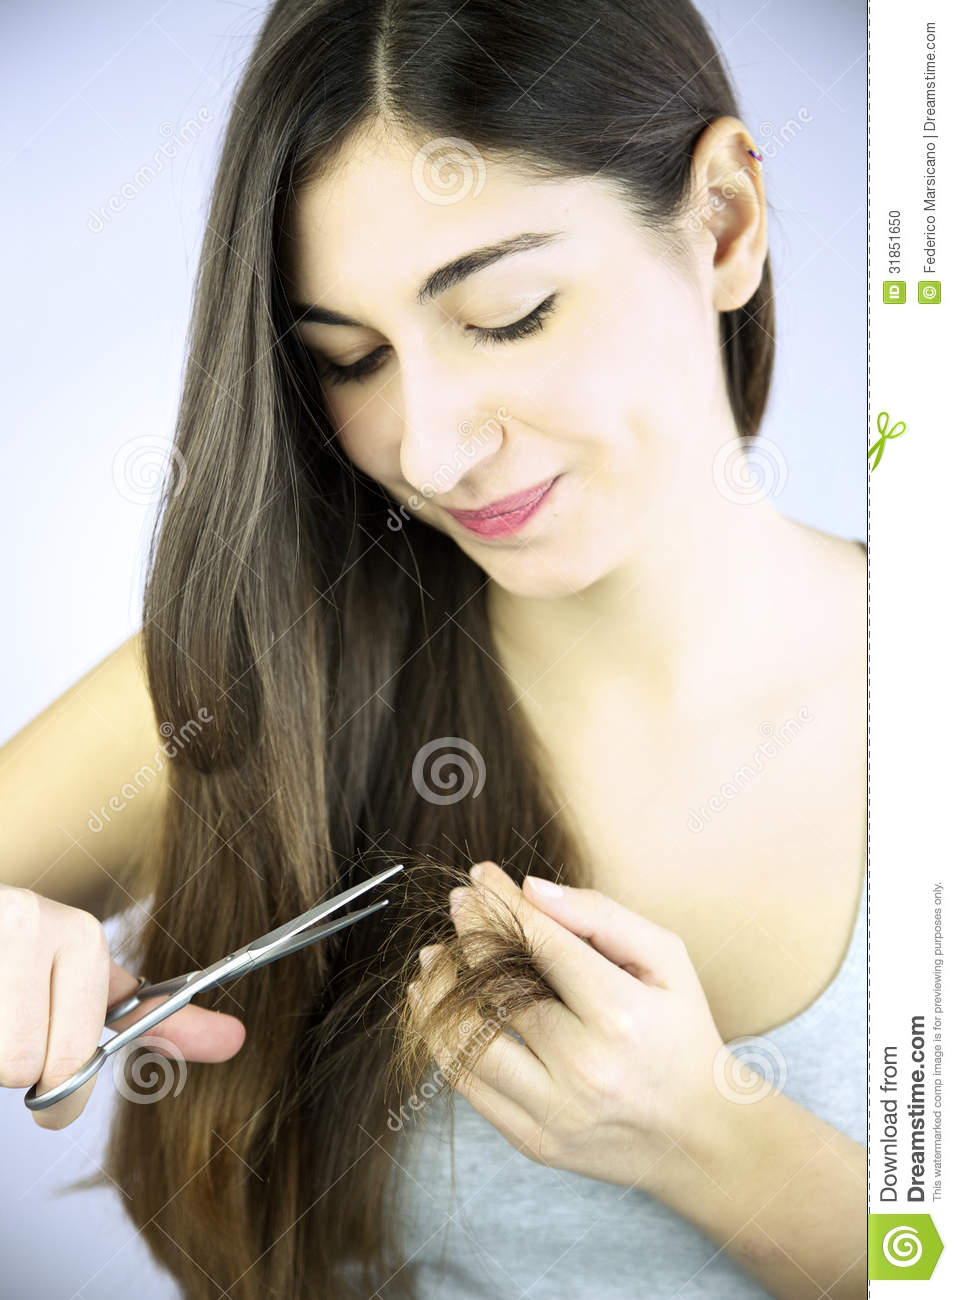 Beautiful Hair Cutting : Beautiful Girl Cutting Split Ends Of Long Hair Stock Photo - Image ...